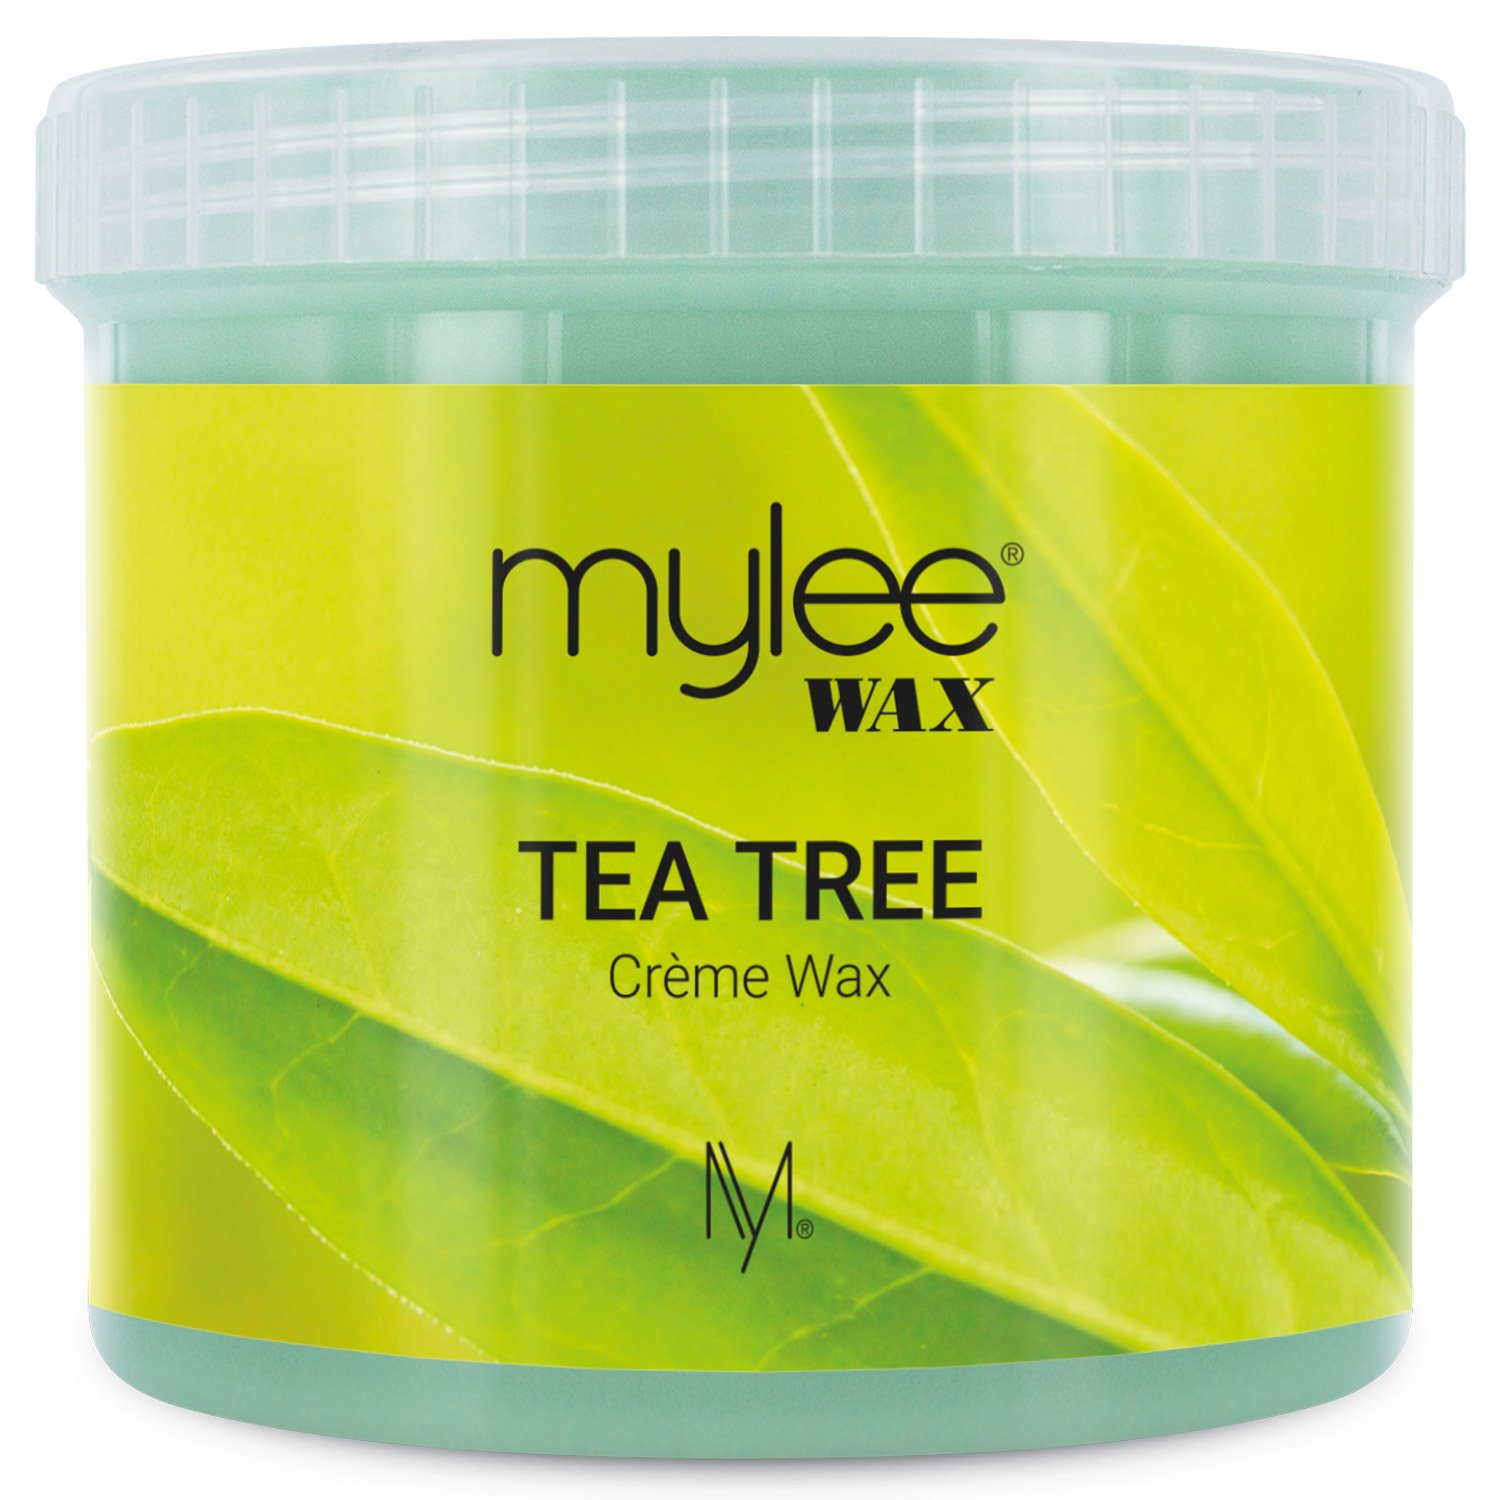 Mylee Tea Tree Soft Creme Wax for Sensitive Skin 425g, Microwavable & Wax Heater Friendly, Ideal for All Body Area Stubborn Coarse Hair Removal